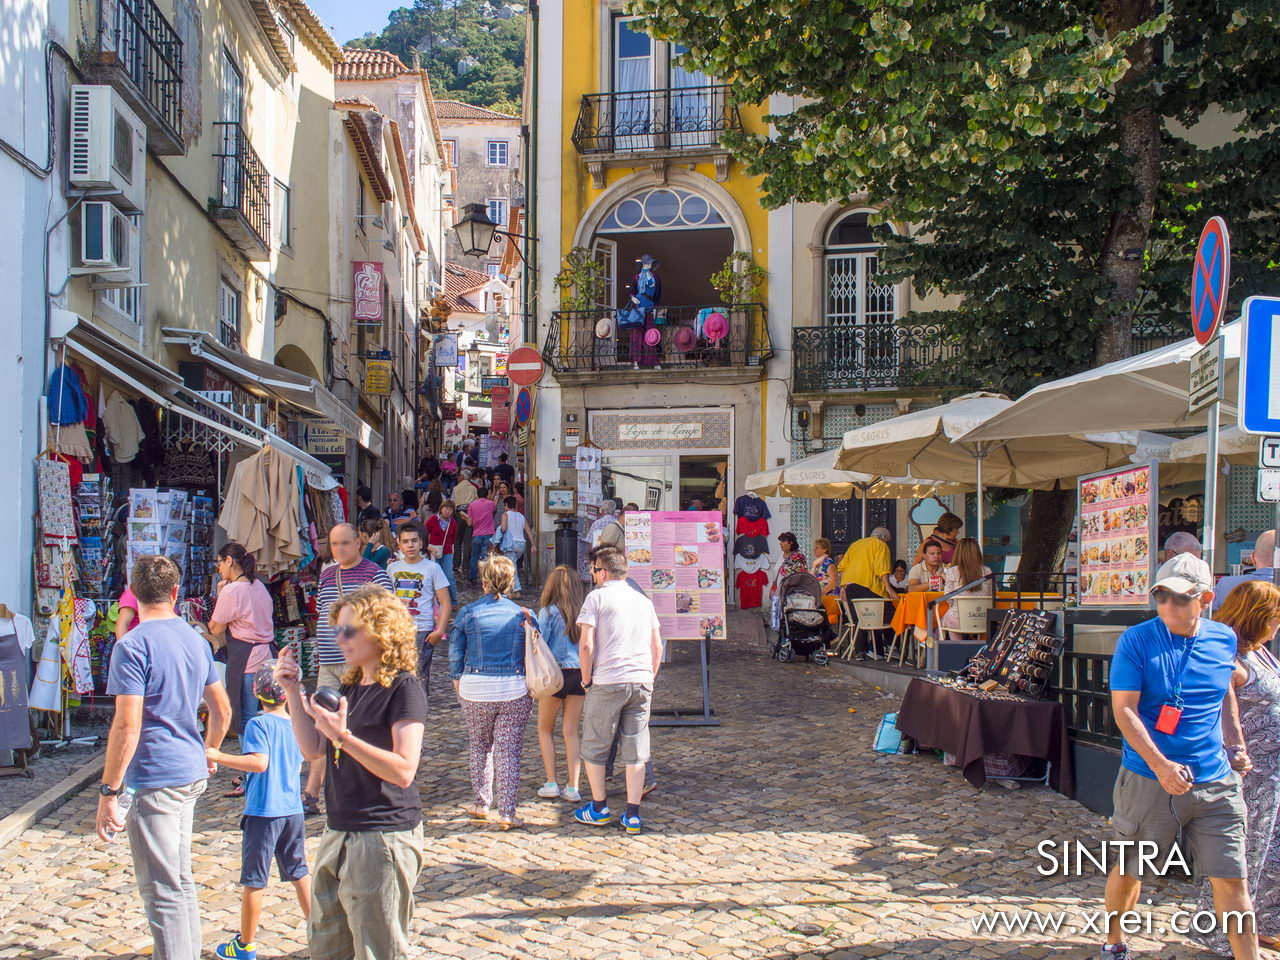 The old town of Sintra has a very traditional trade, where we find small craft shops, restaurants, bars, and the Piriquita confectionery, with the famous sintra queijadas and other sugary delicacies